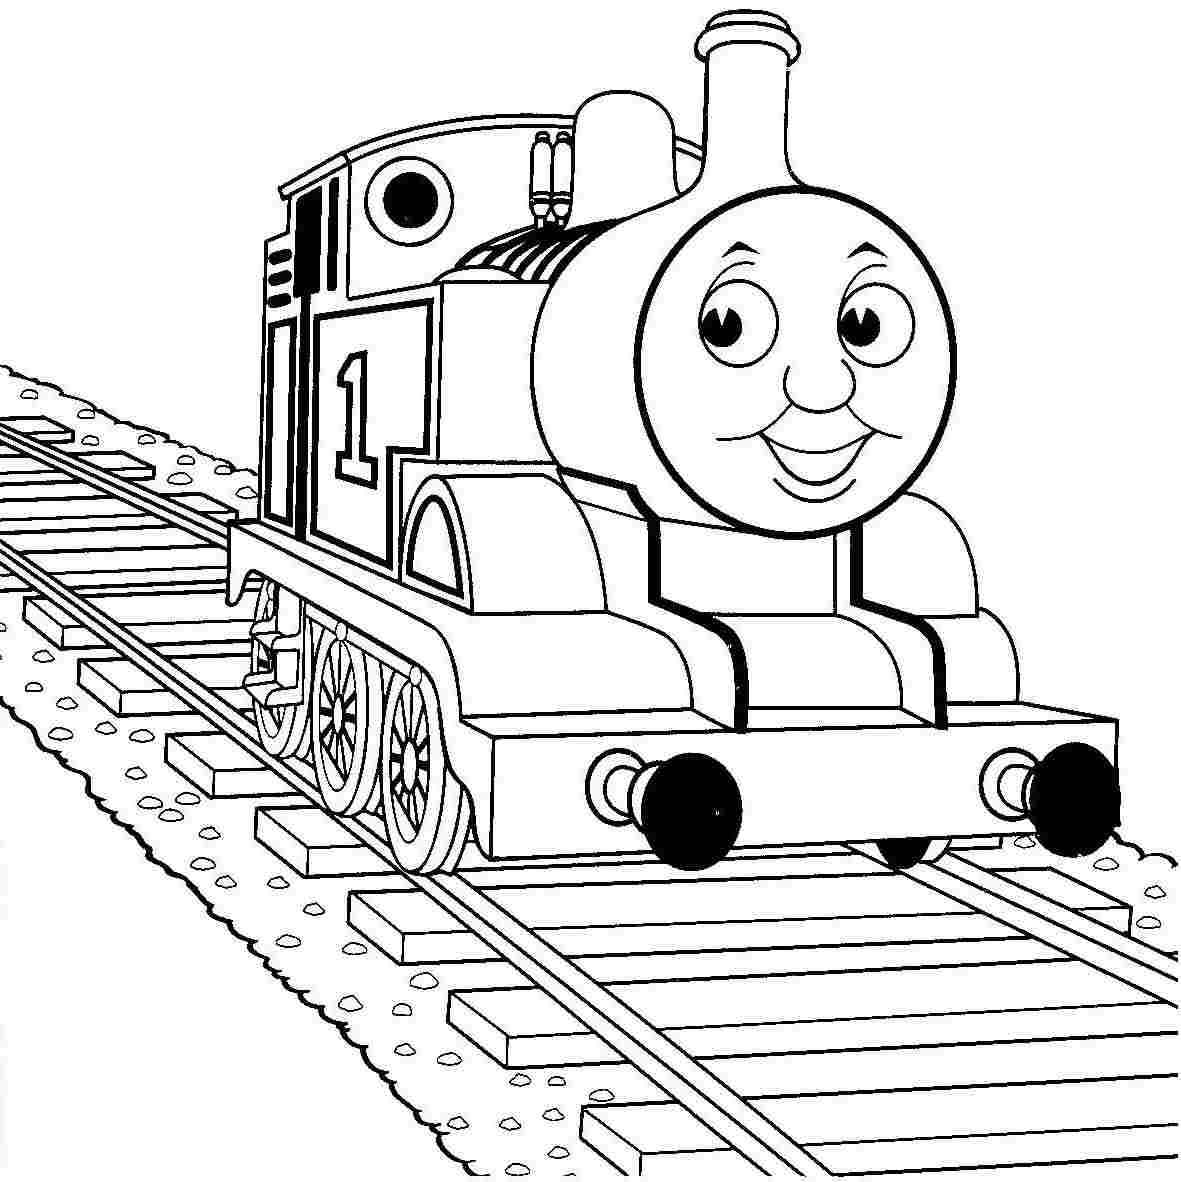 thomas the train color pages thomas the tank engine coloring pages to download and the thomas color train pages